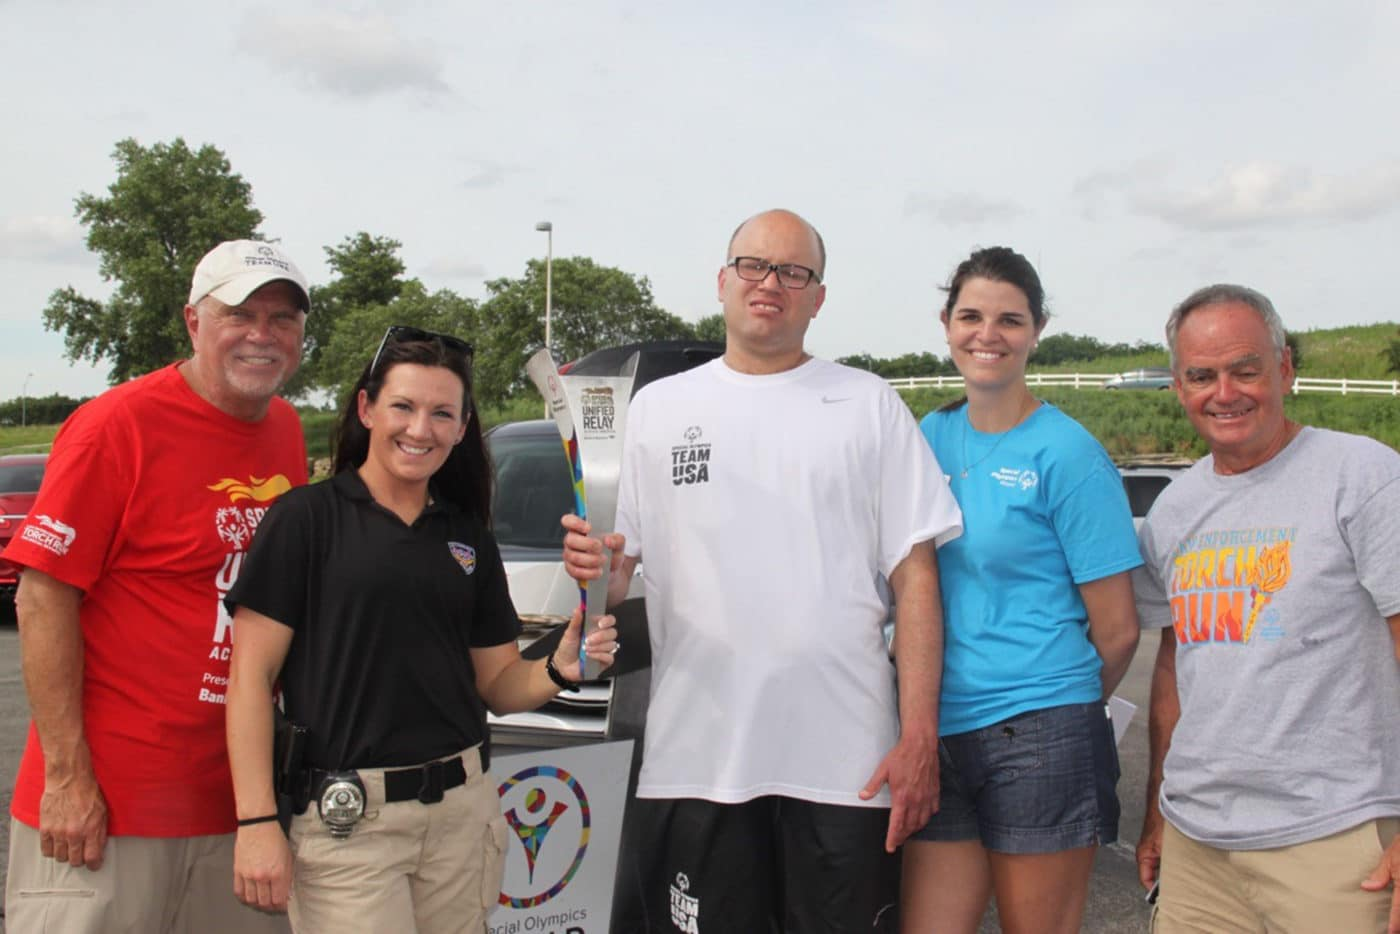 Lee's Summit Police Officer Amanda Geno, second from left, will join Missouri Special Olympics athlete Brett Harper for the final leg of the Law Enforcement Torch Run to the 2022 World Games in Kazan, Russia.